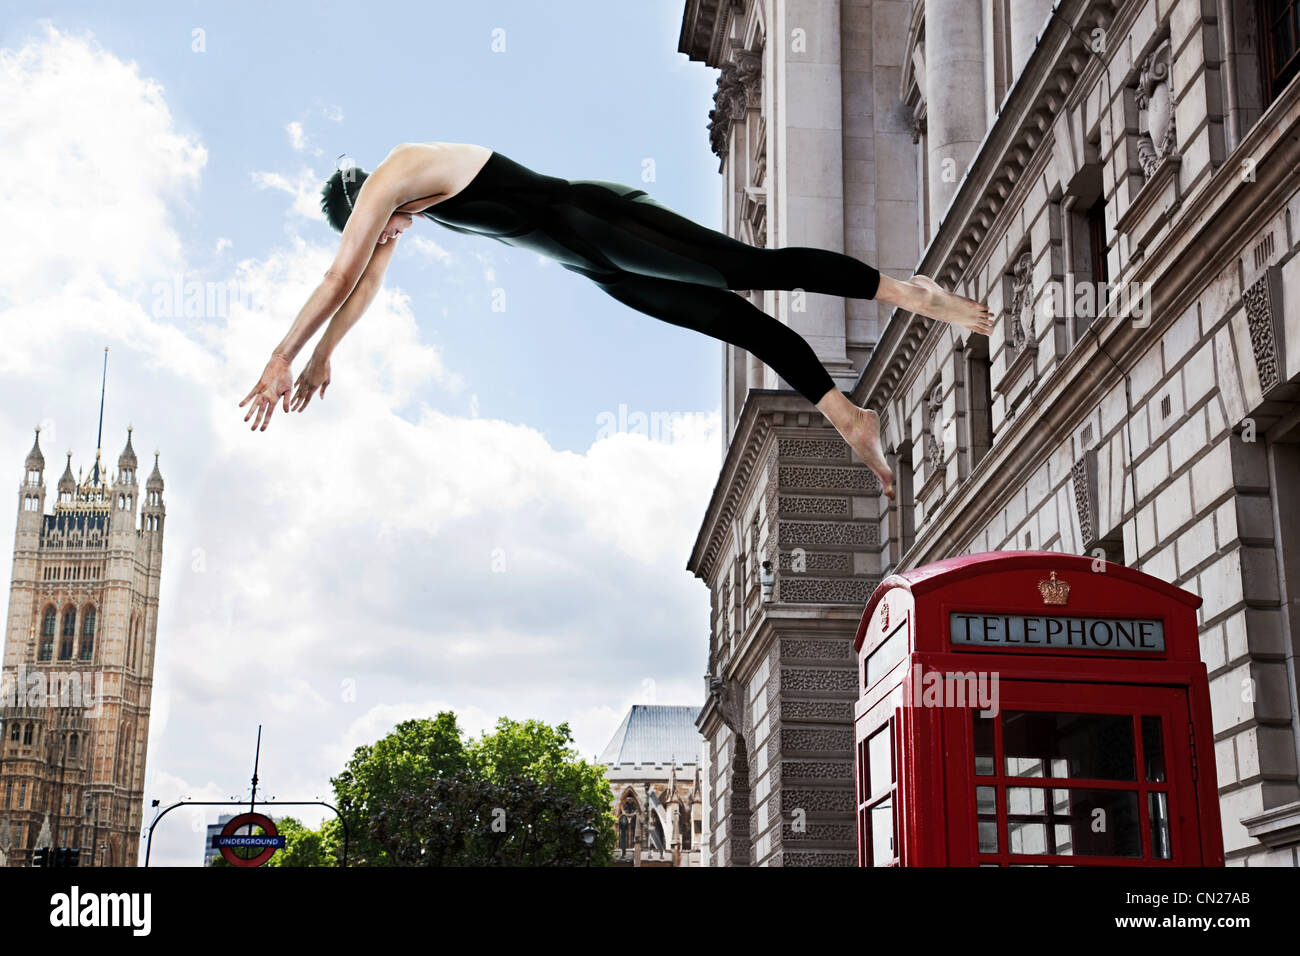 Swimmer diving from red telephone box, London, England - Stock Image